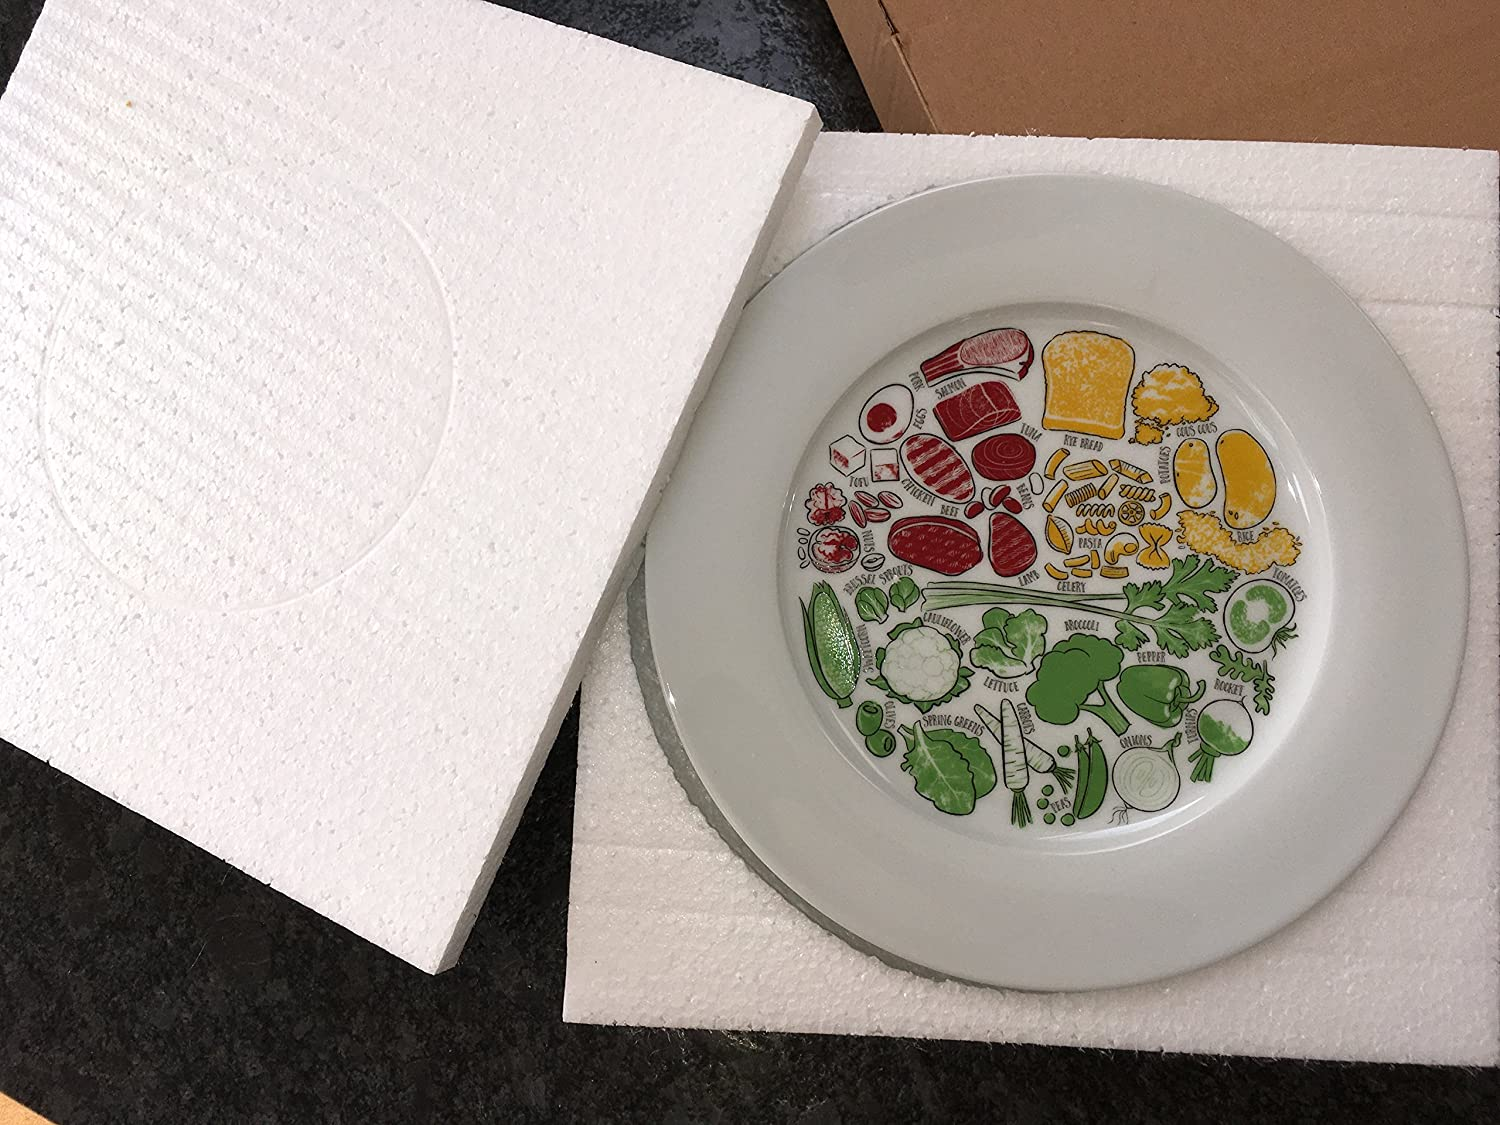 New China Plate Picture Healthy Portion Plate